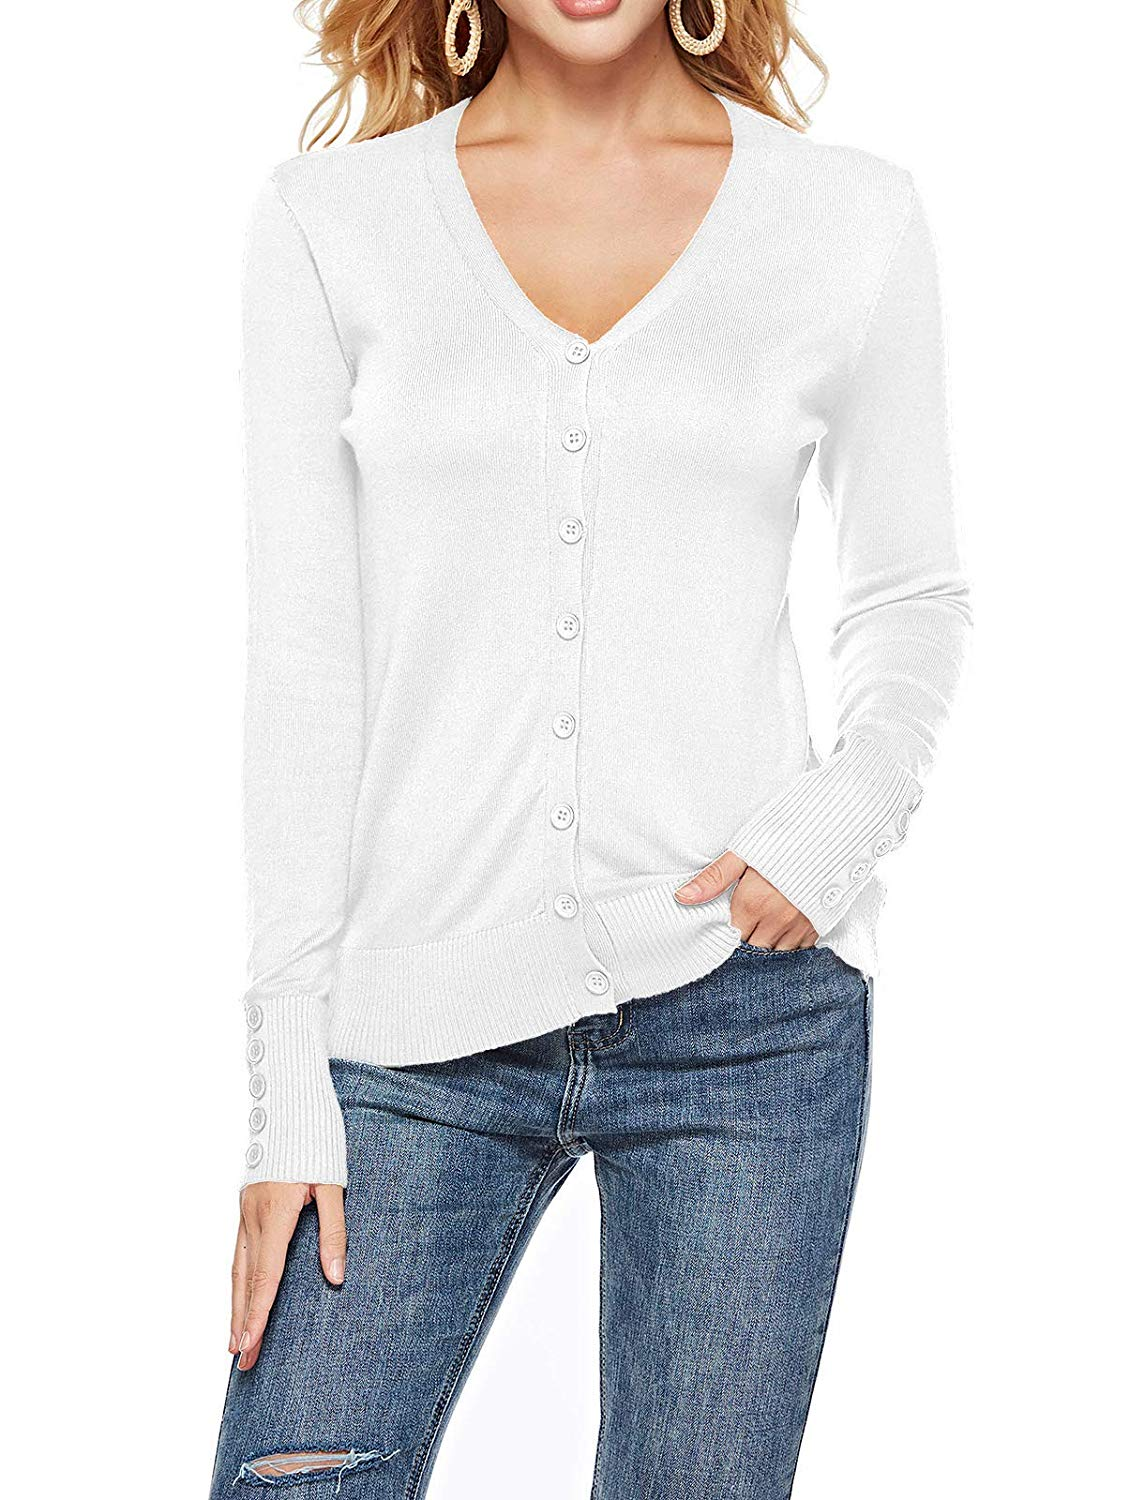 6b06748163 THANTH Womens V Neck Long Sleeve Button Down Knit Cardigan Sweater